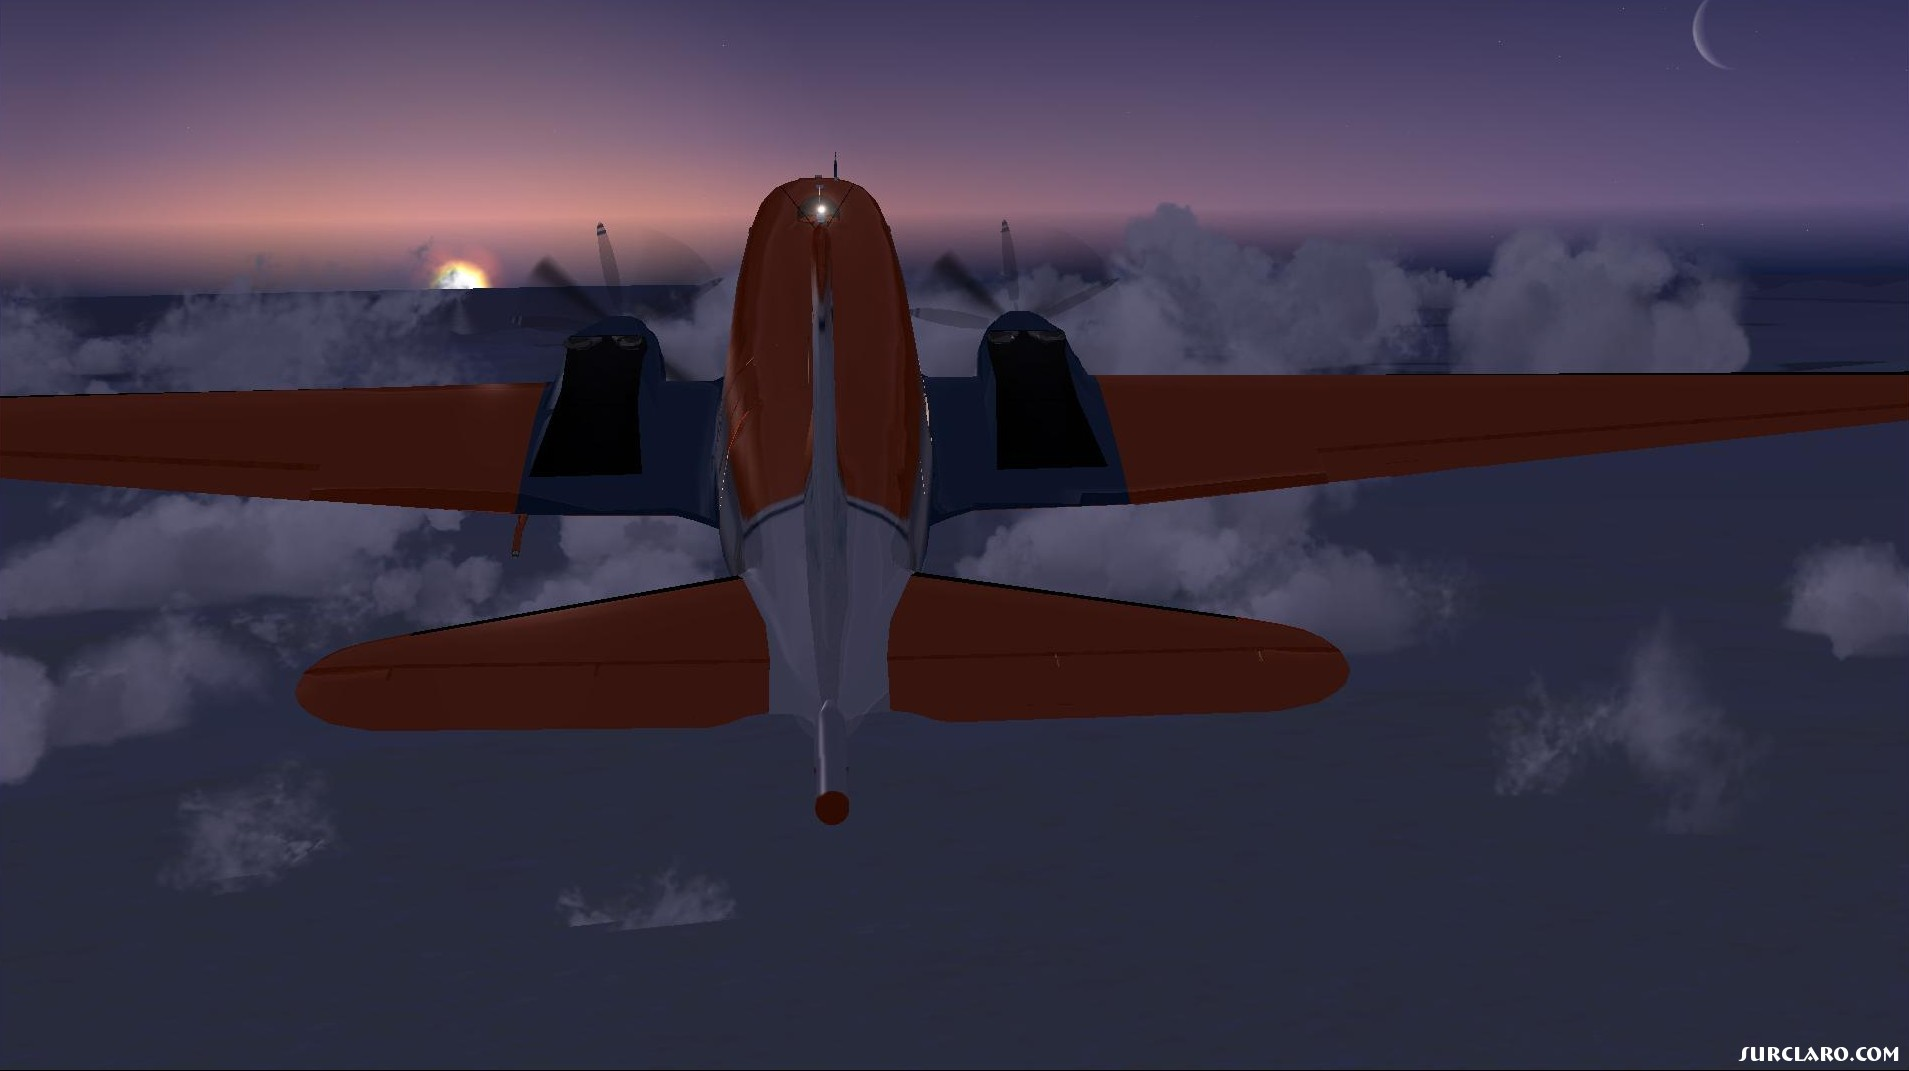 Flying BT-67 into sunrise, over Greenland - Photo 18131